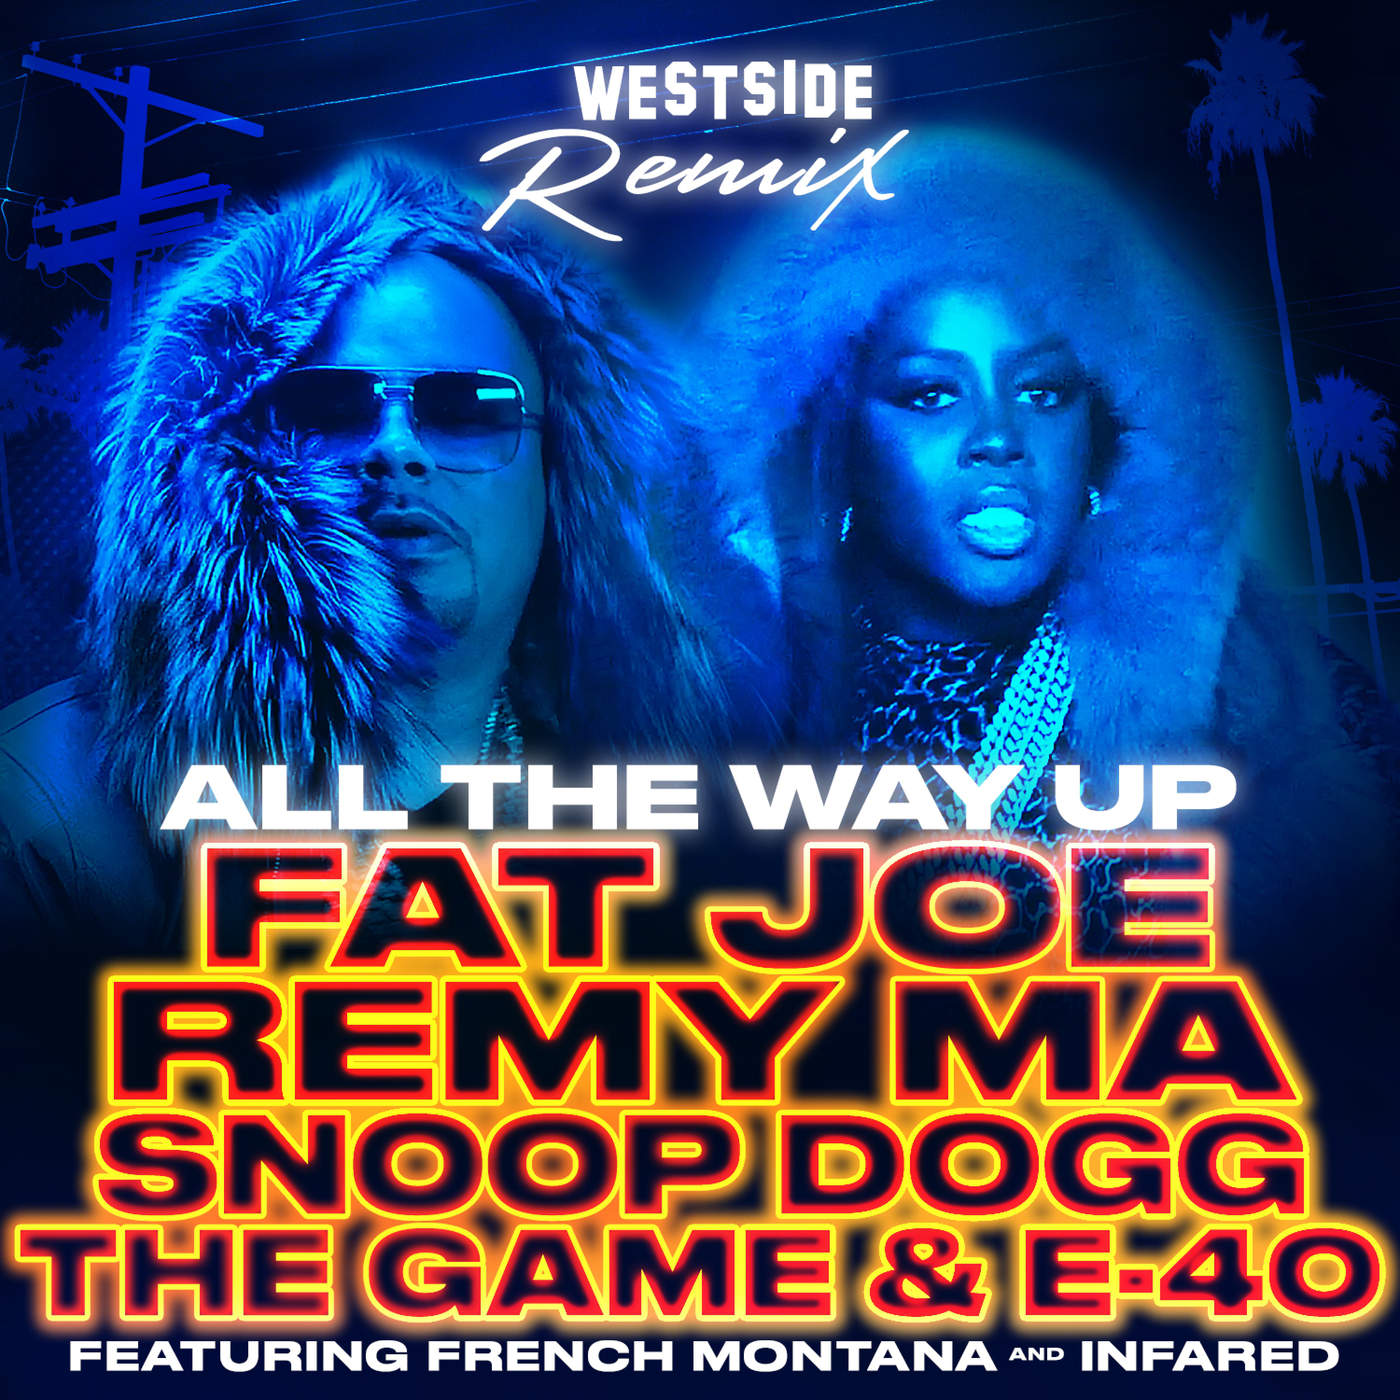 Fat Joe, Remy Ma, Snoop Dogg, The Game & E-40 - All the Way Up (Westside Remix) [feat. French Montana & Infared] - Single Cover